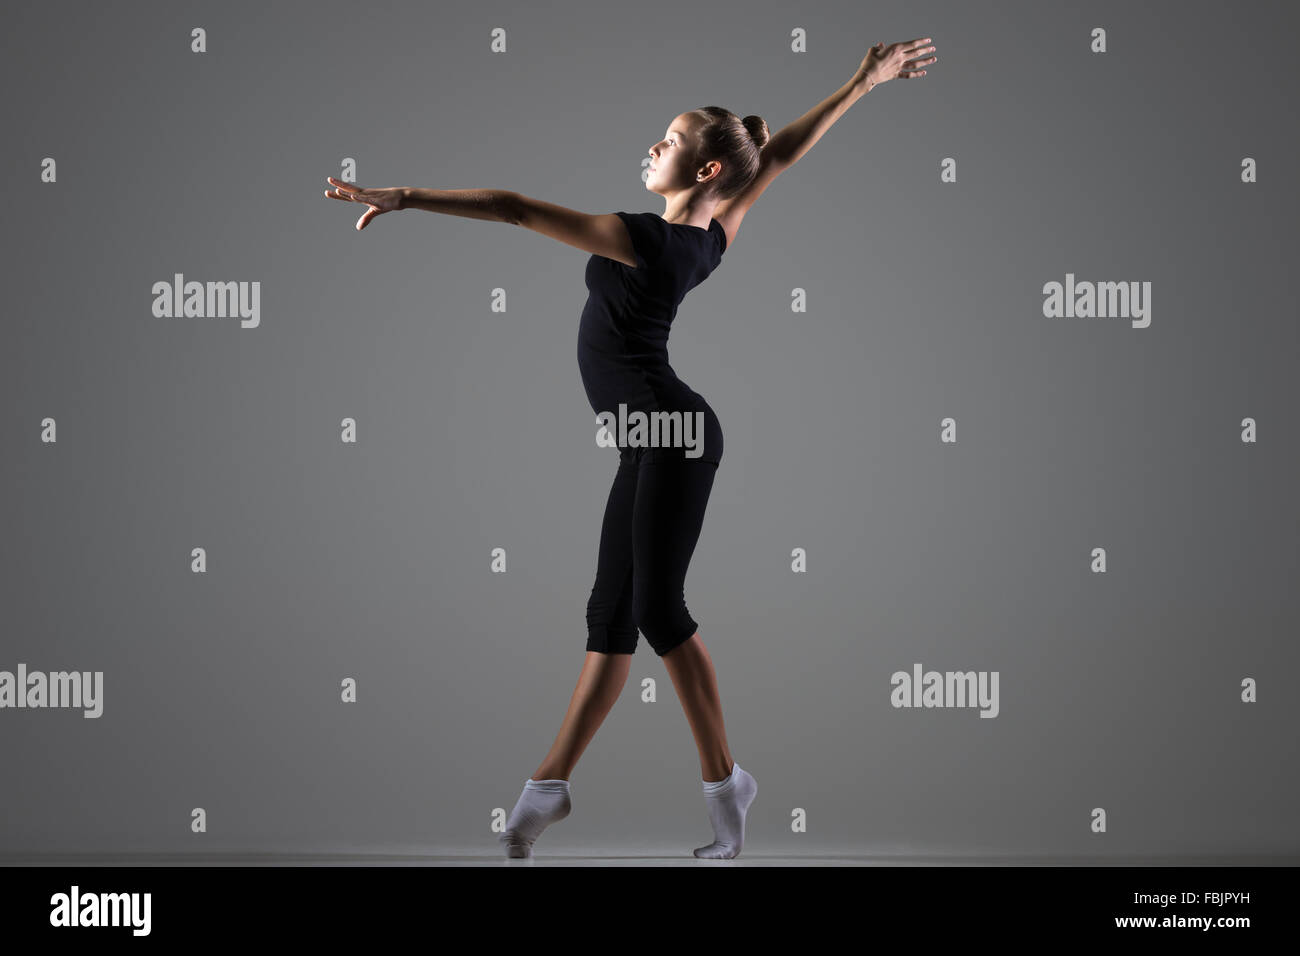 Beautiful cool young fit gymnast athlete woman in sportswear working out, dancing on tiptoes, doing art gymnastics - Stock Image